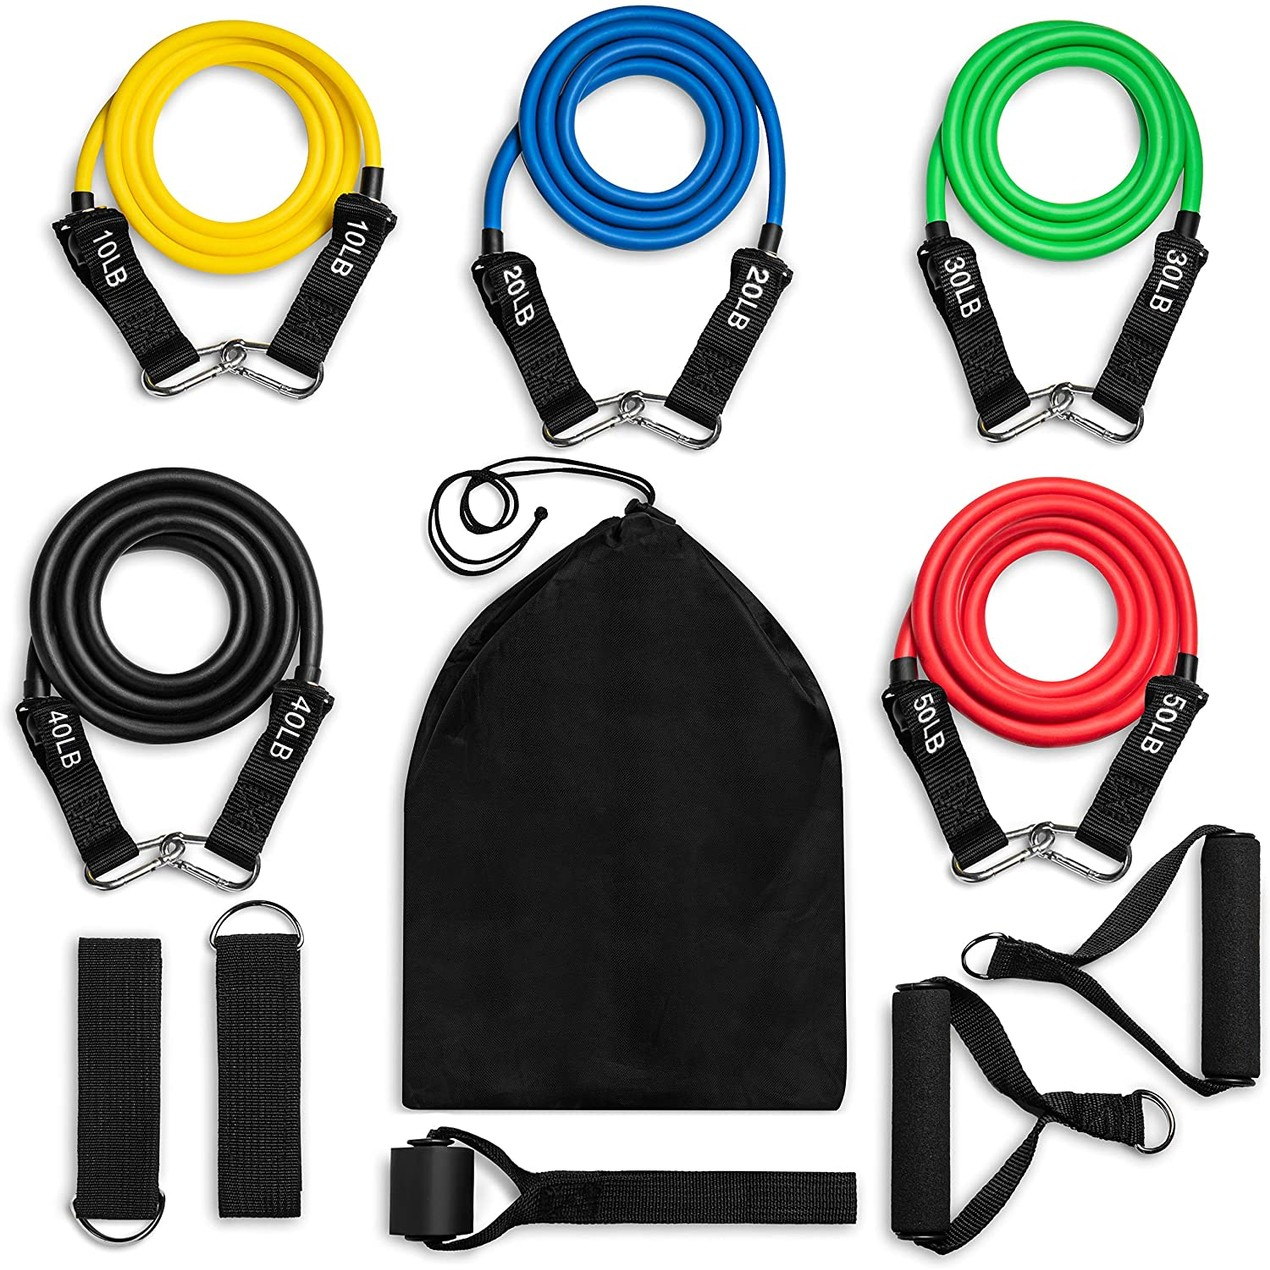 12-Piece ACECOM Exercise Resistance Bands Bundle